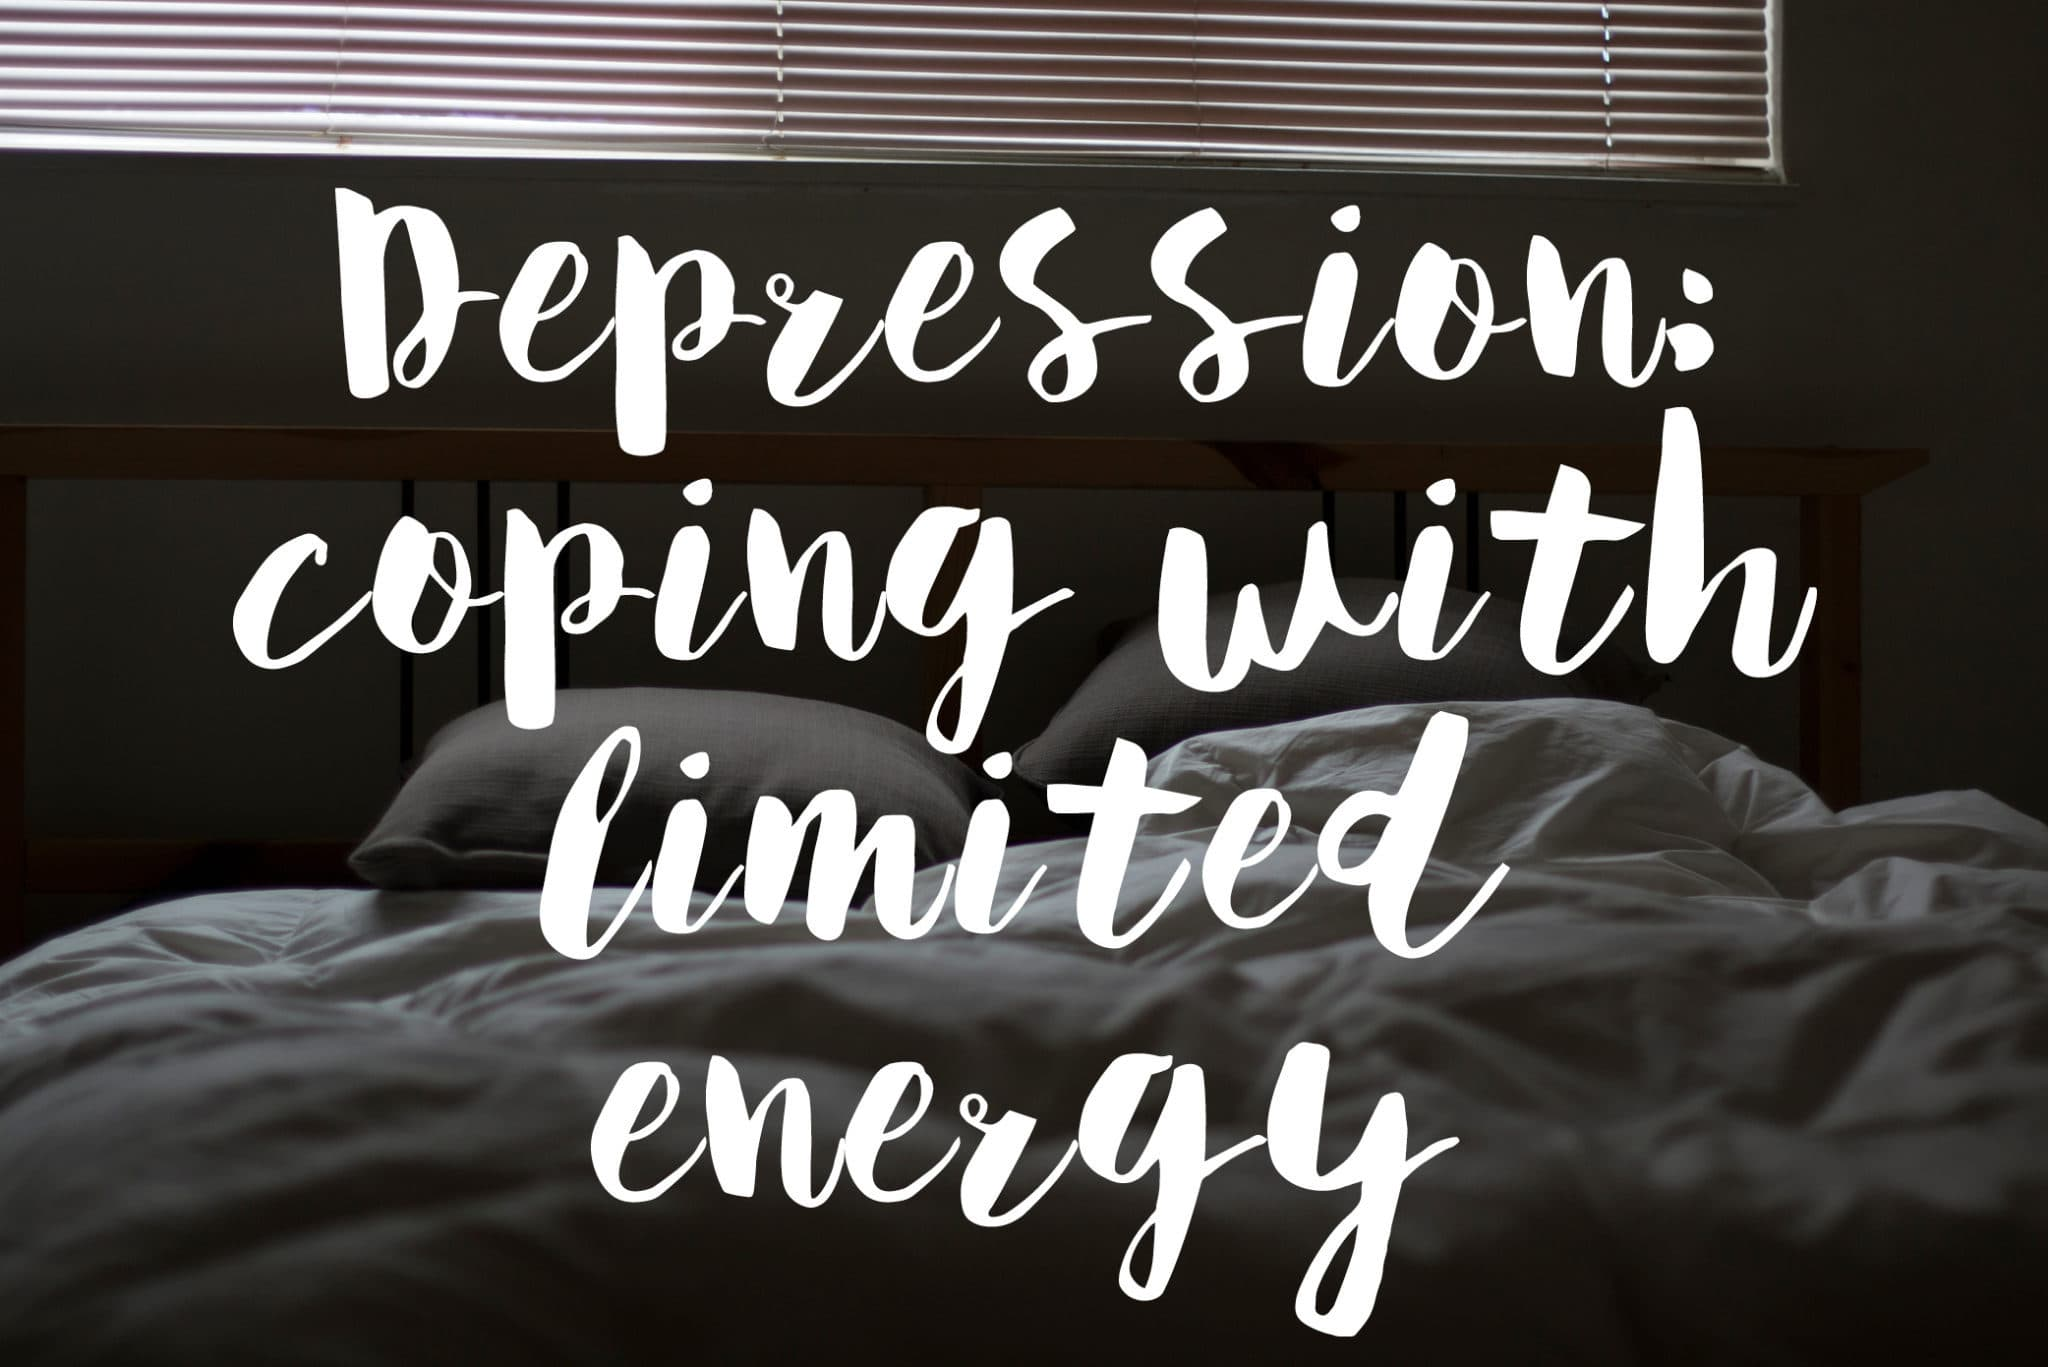 Depression coping with limited energy